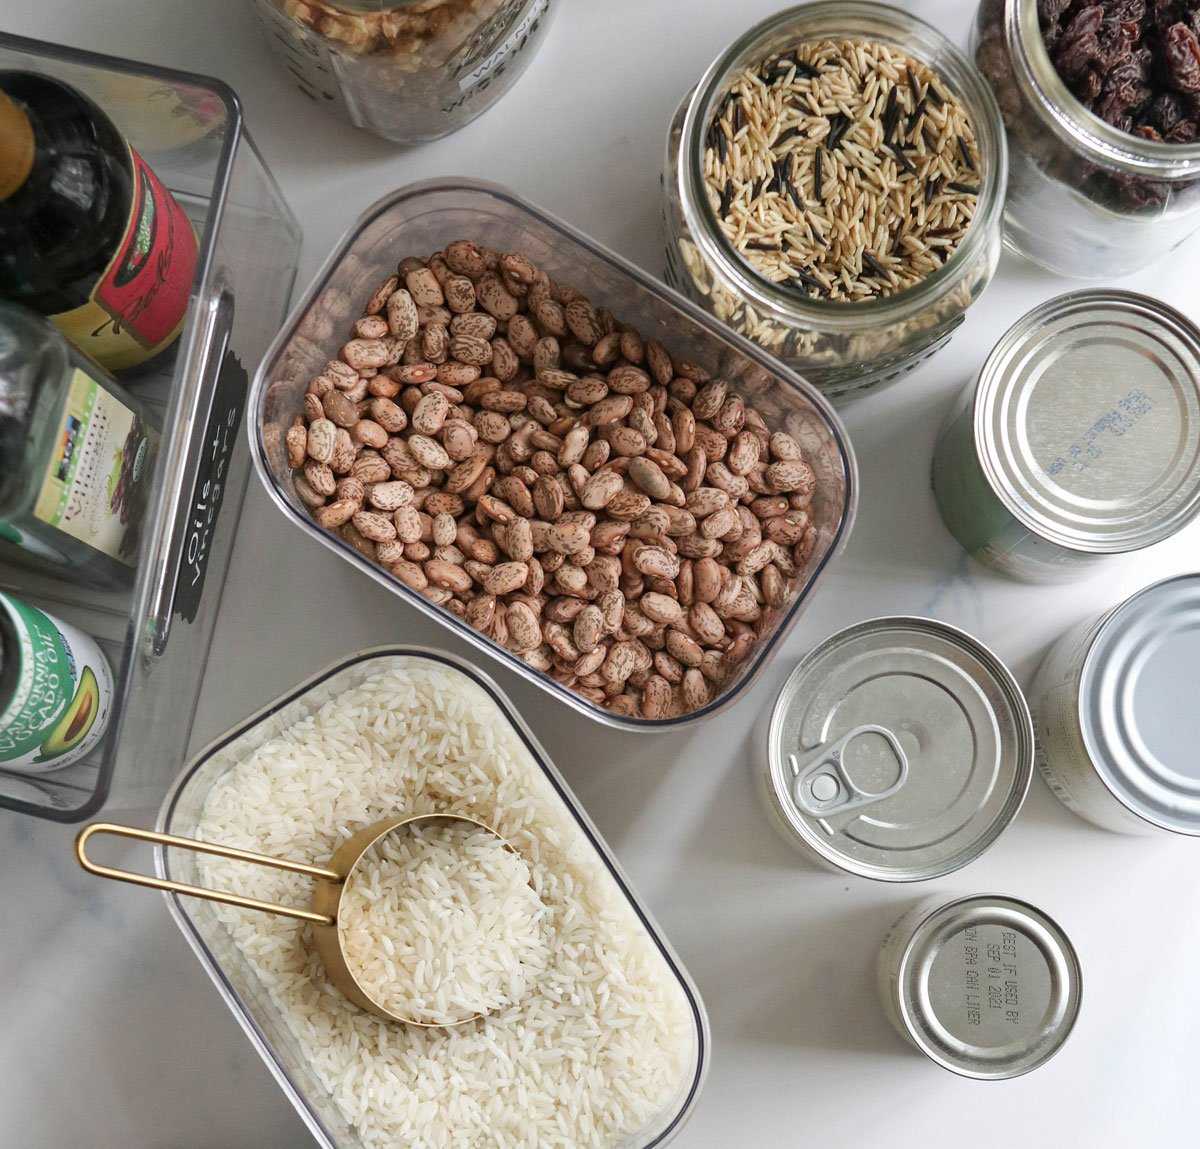 dry ingredients and canned goods